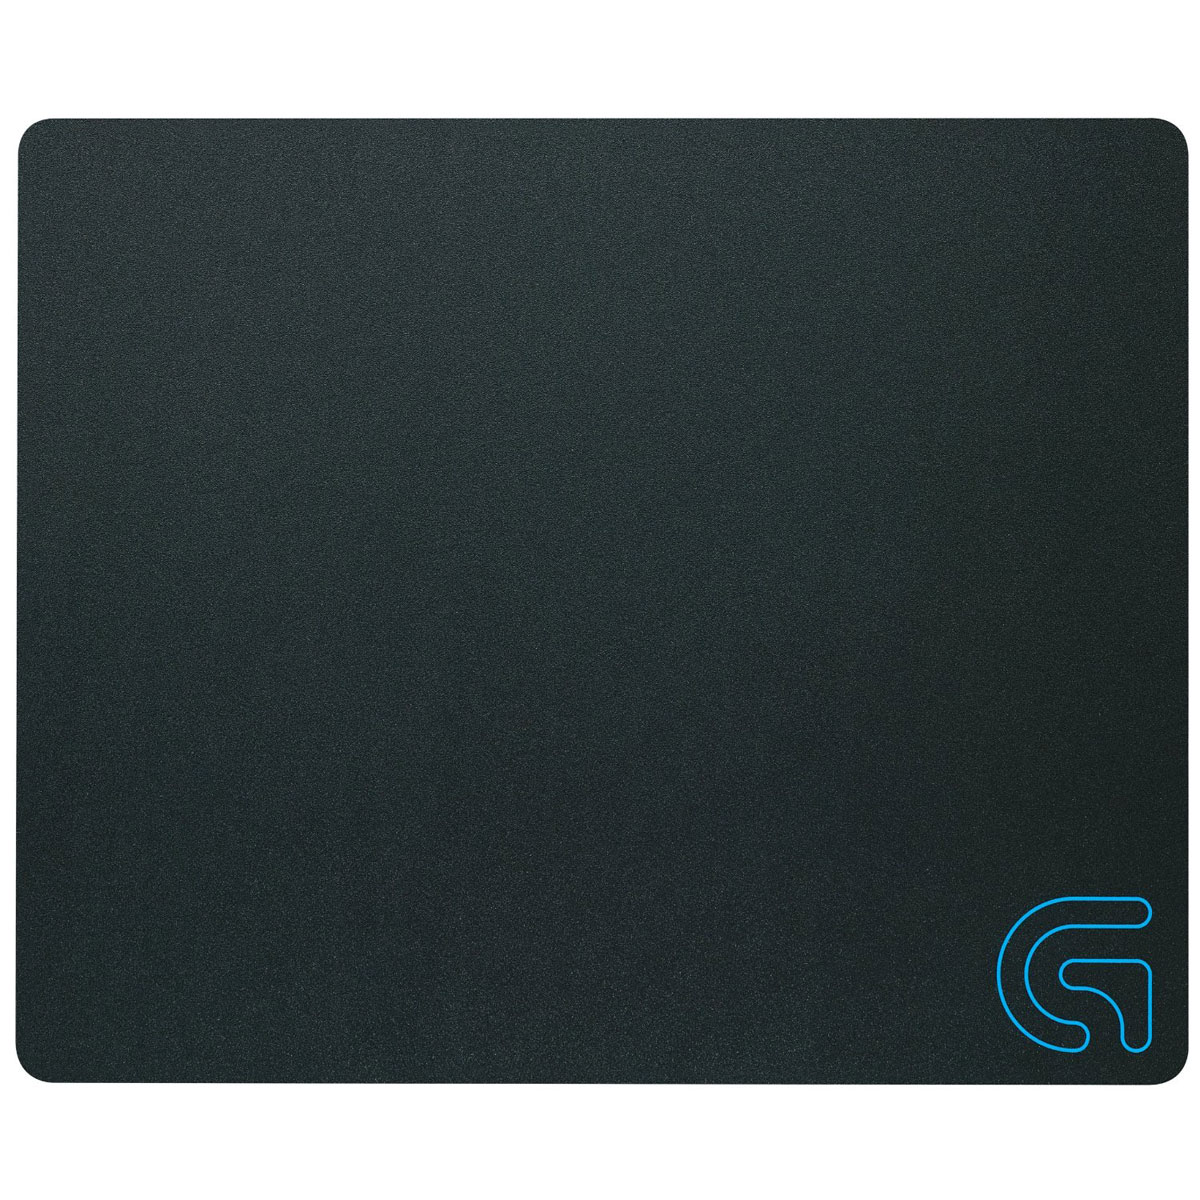 Logitech G440 Hard Gaming Mouse Pad - Tapis de souris Logitech - 0